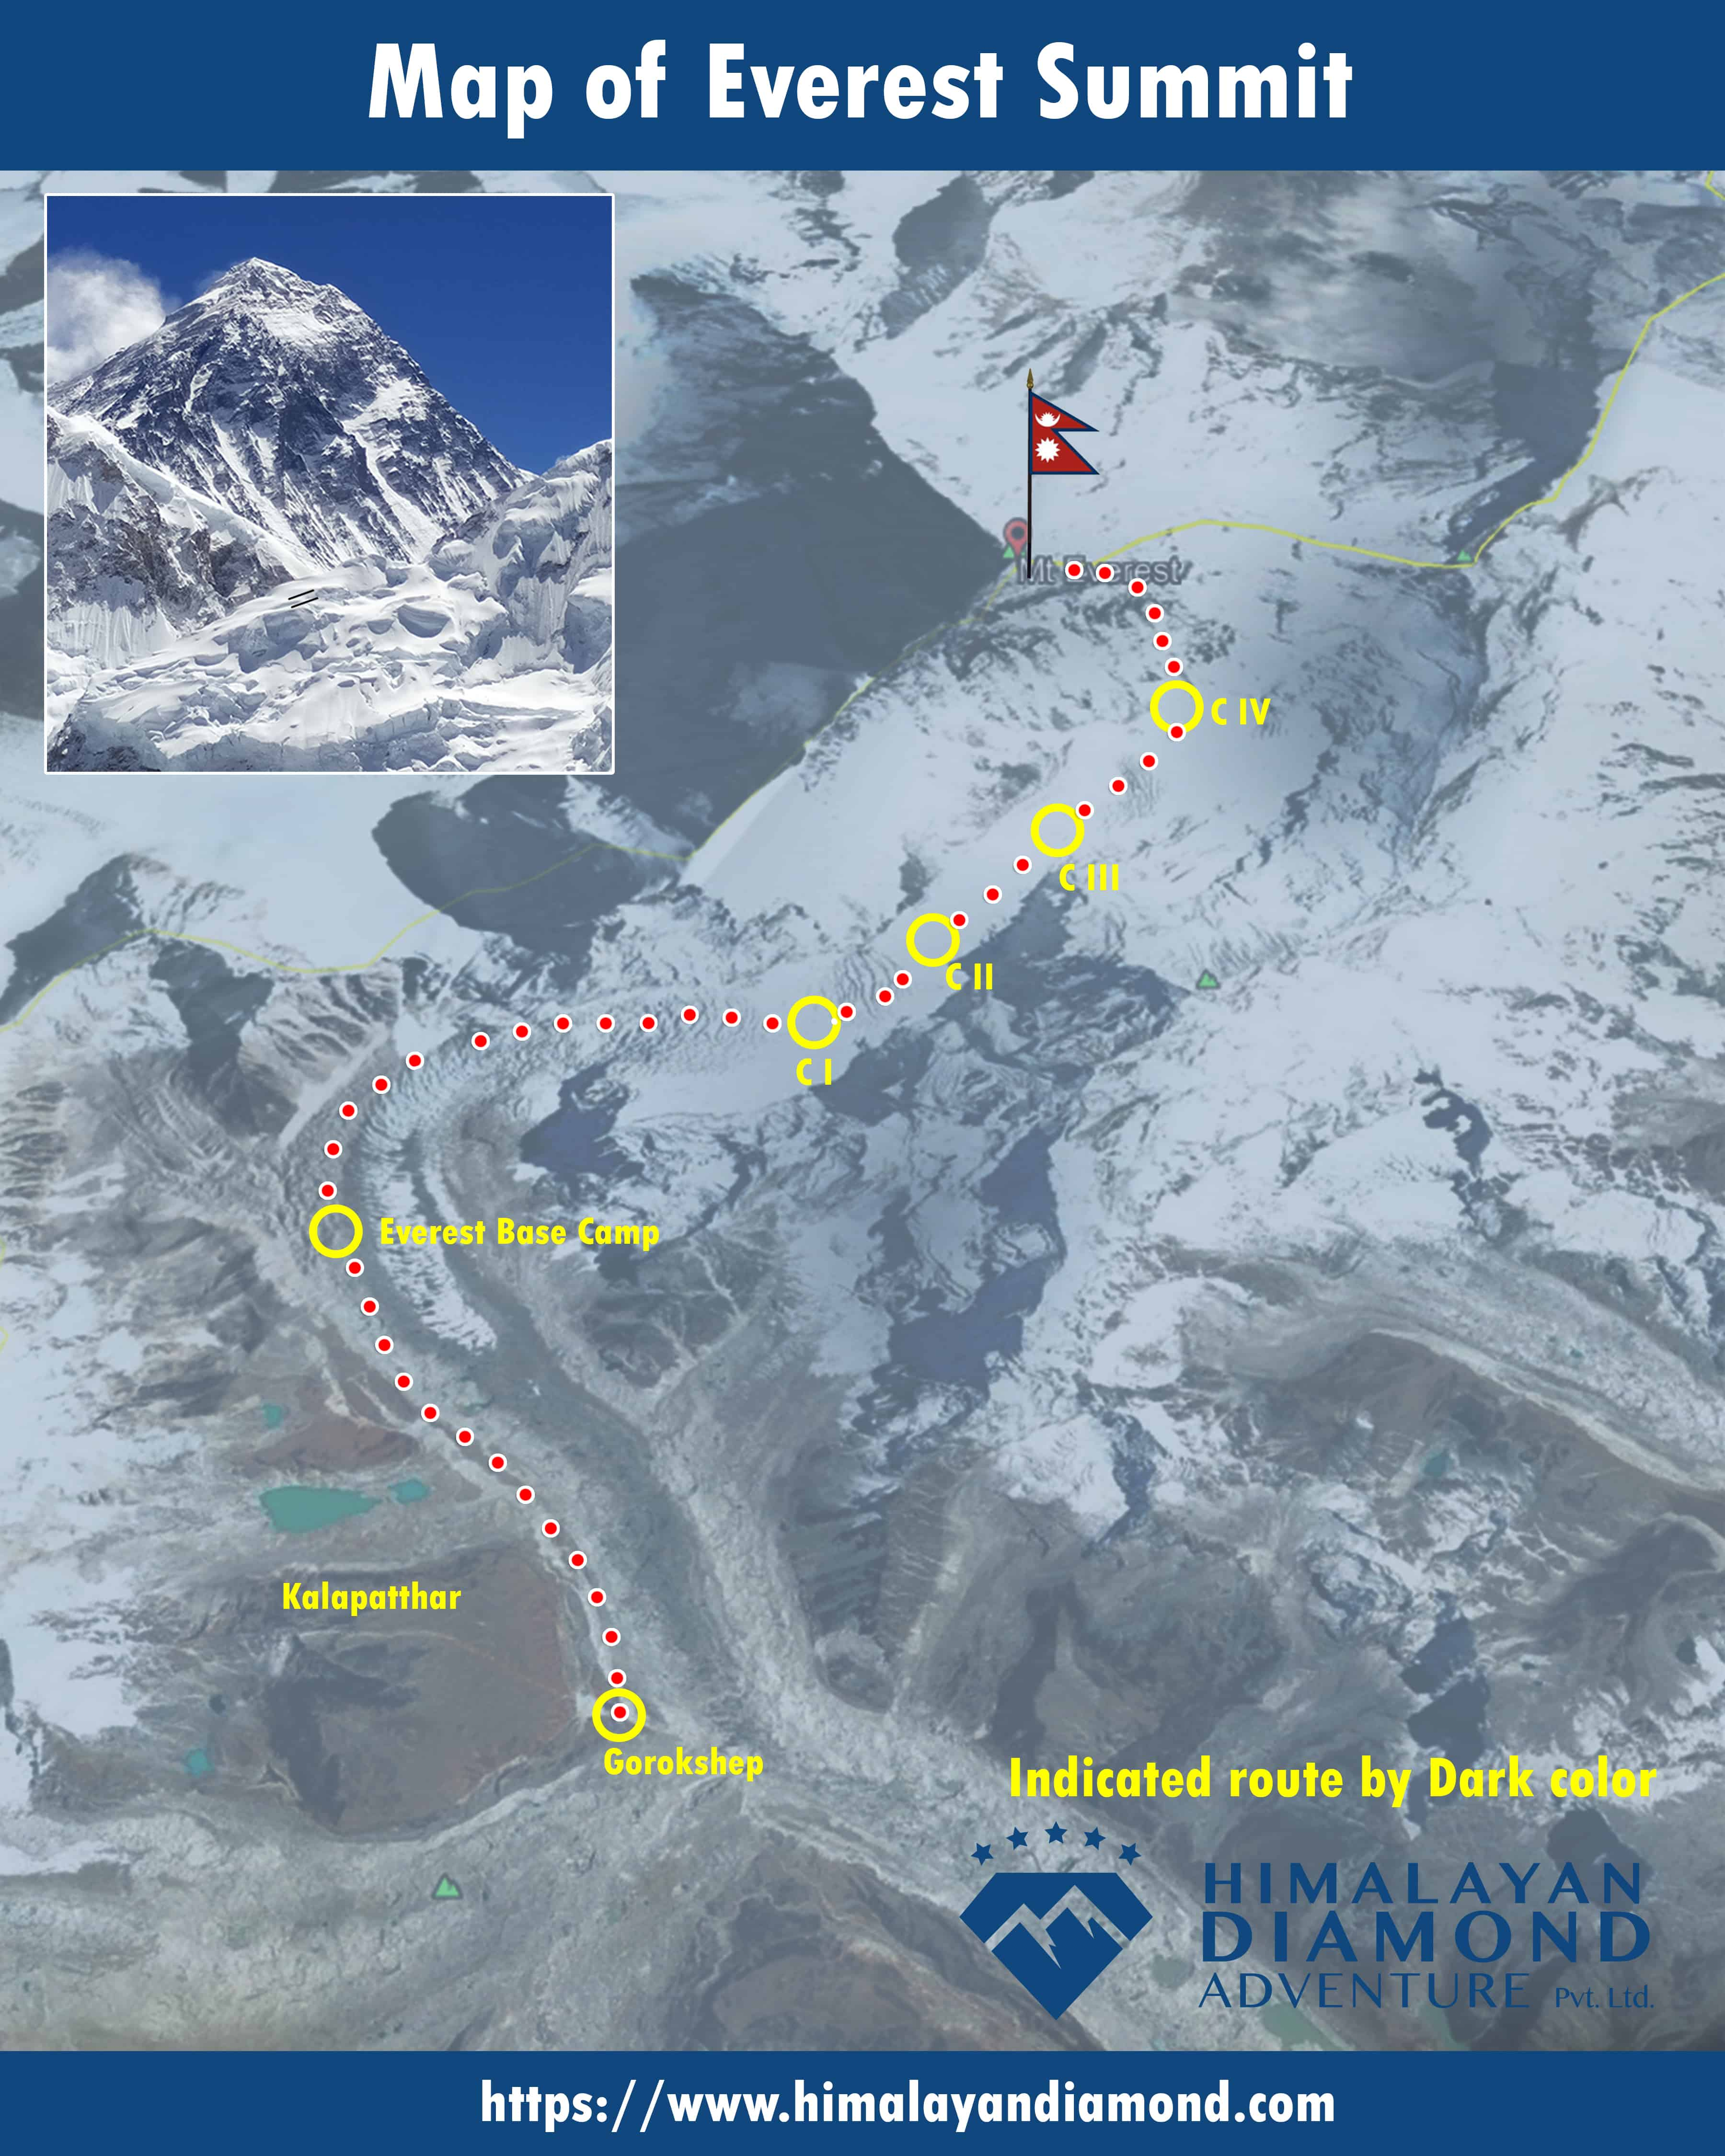 Mount Everest Expedition [8,848 meters/ 29,029 ft] Map